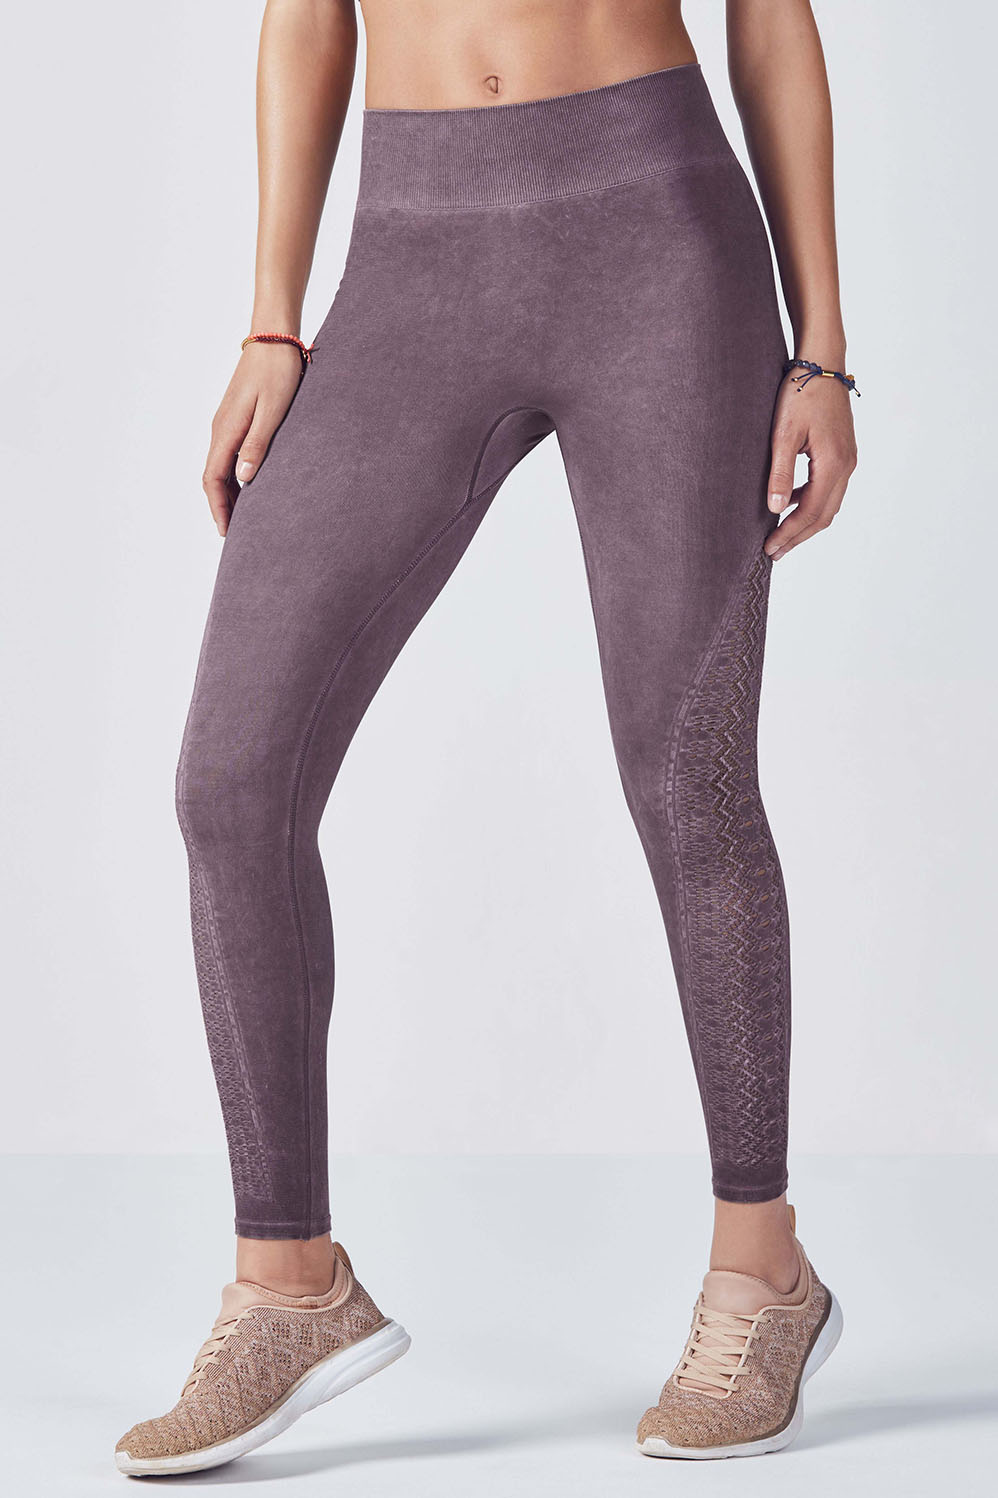 Fabletics Tight Seamless Solid Legging Womens Gray Size L